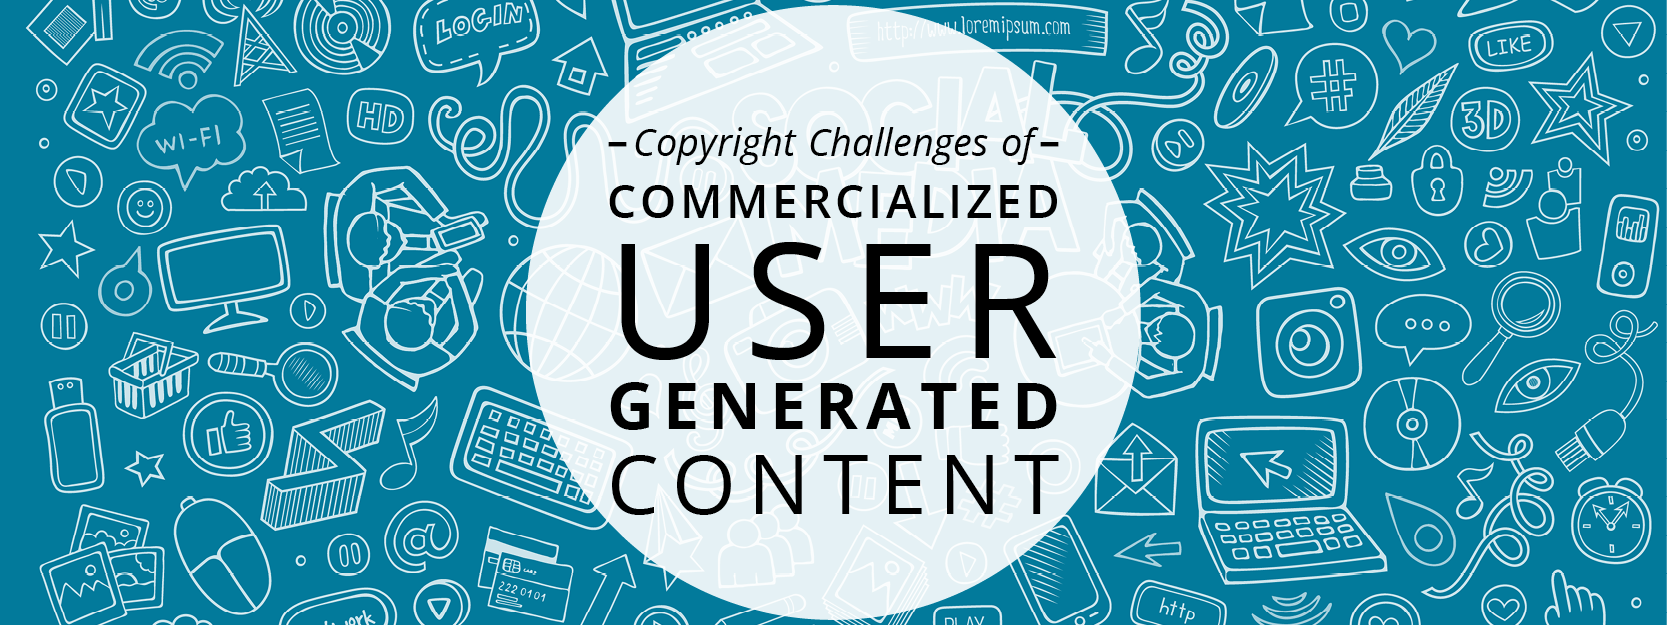 Copyright Challenges of User-Generated Content